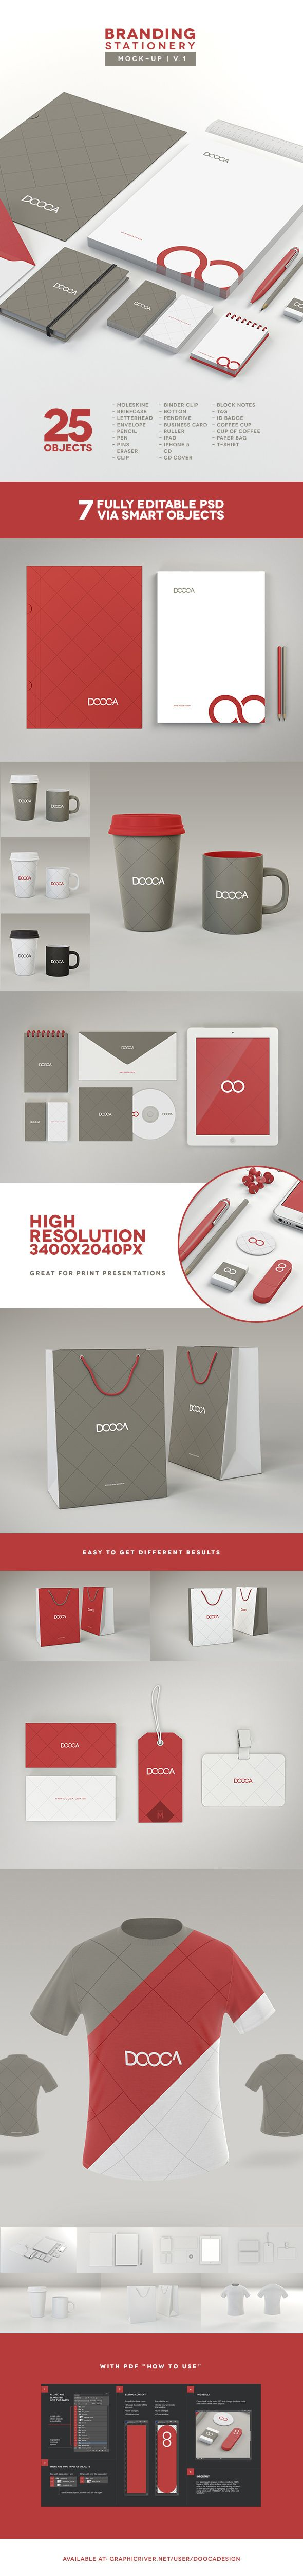 #Branding / #Stationery Mock-up on Behance